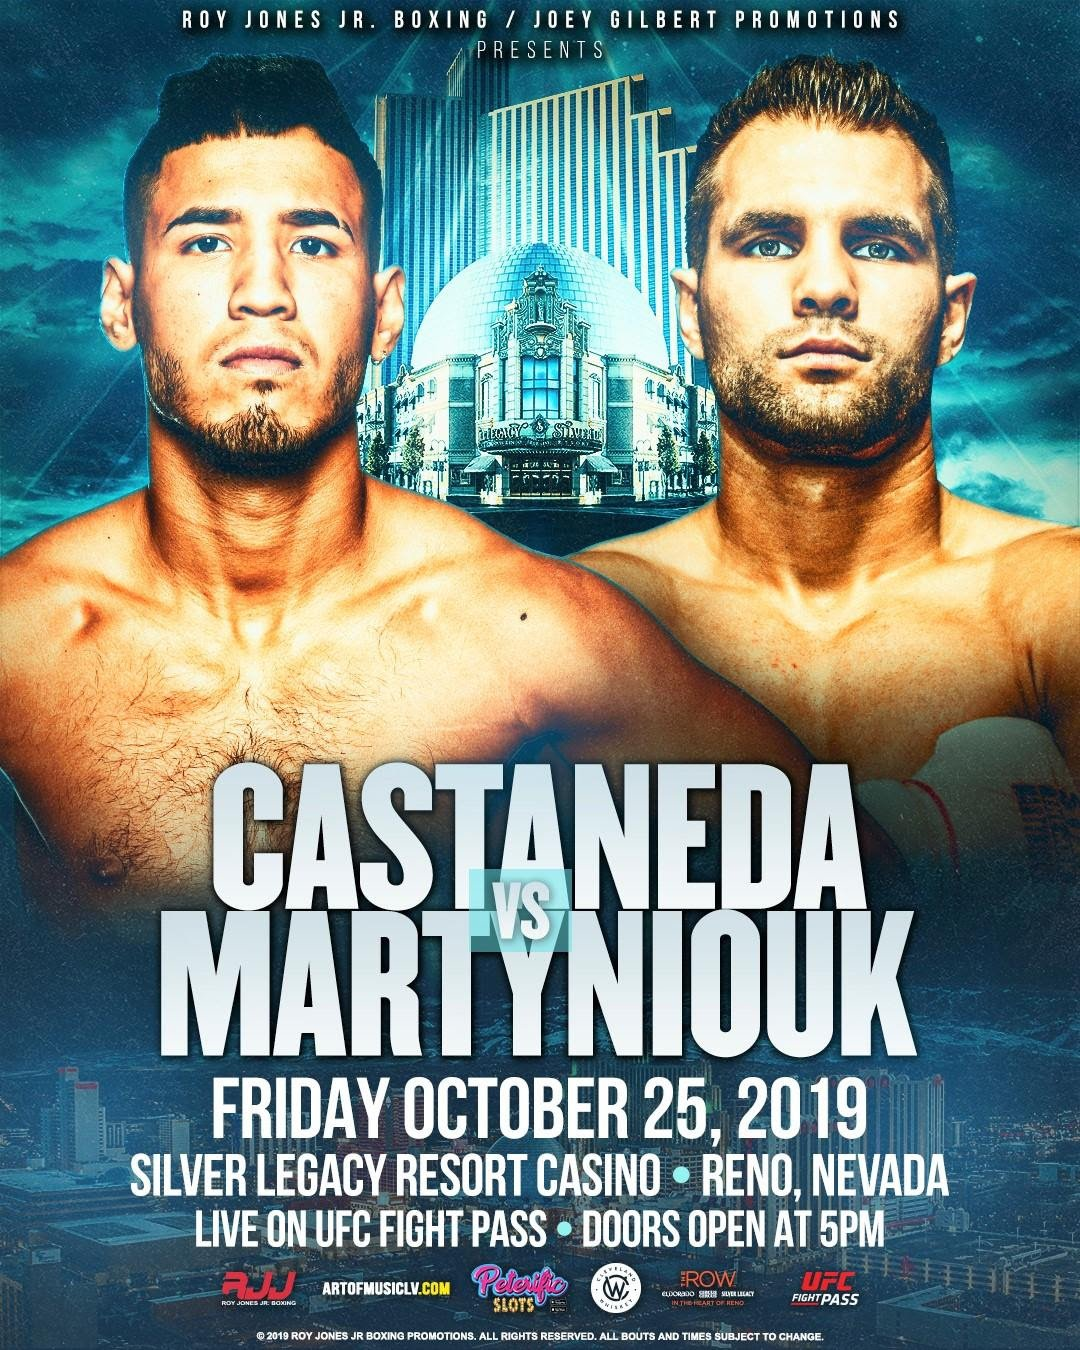 """Stan Martyniouk - The next wave of Reno boxers will continue its rich boxing tradition October 25 on """"RJJ Boxing on UFC FIGHT PASS®,"""" co-promoted by Joey Gilbert Promotions in association with Silver Legacy Resort Casino at THE ROW in Reno, Nevada."""